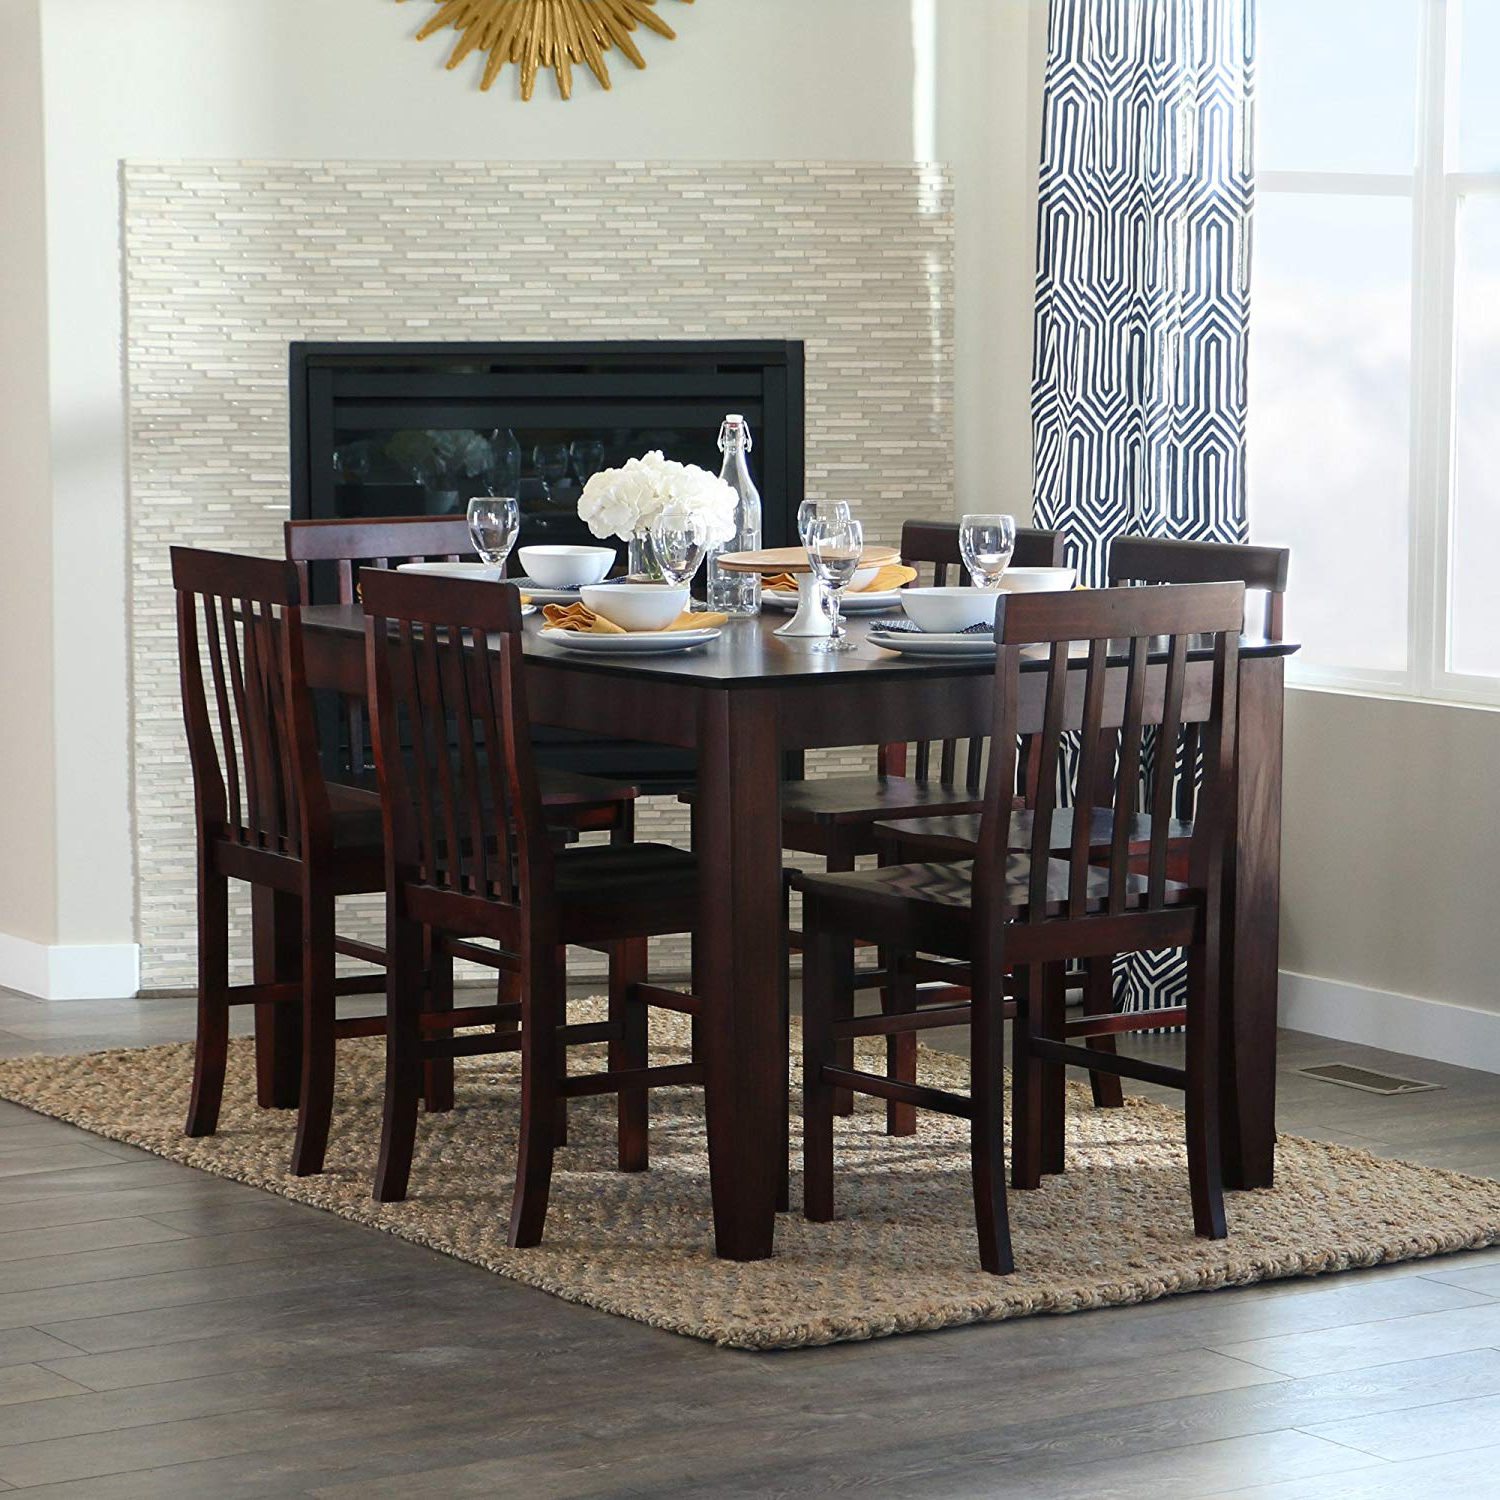 Hearst Oak Wood Dining Tables Within Most Popular Walker Edison 7 Piece Espresso Wood Dining Set (View 7 of 25)